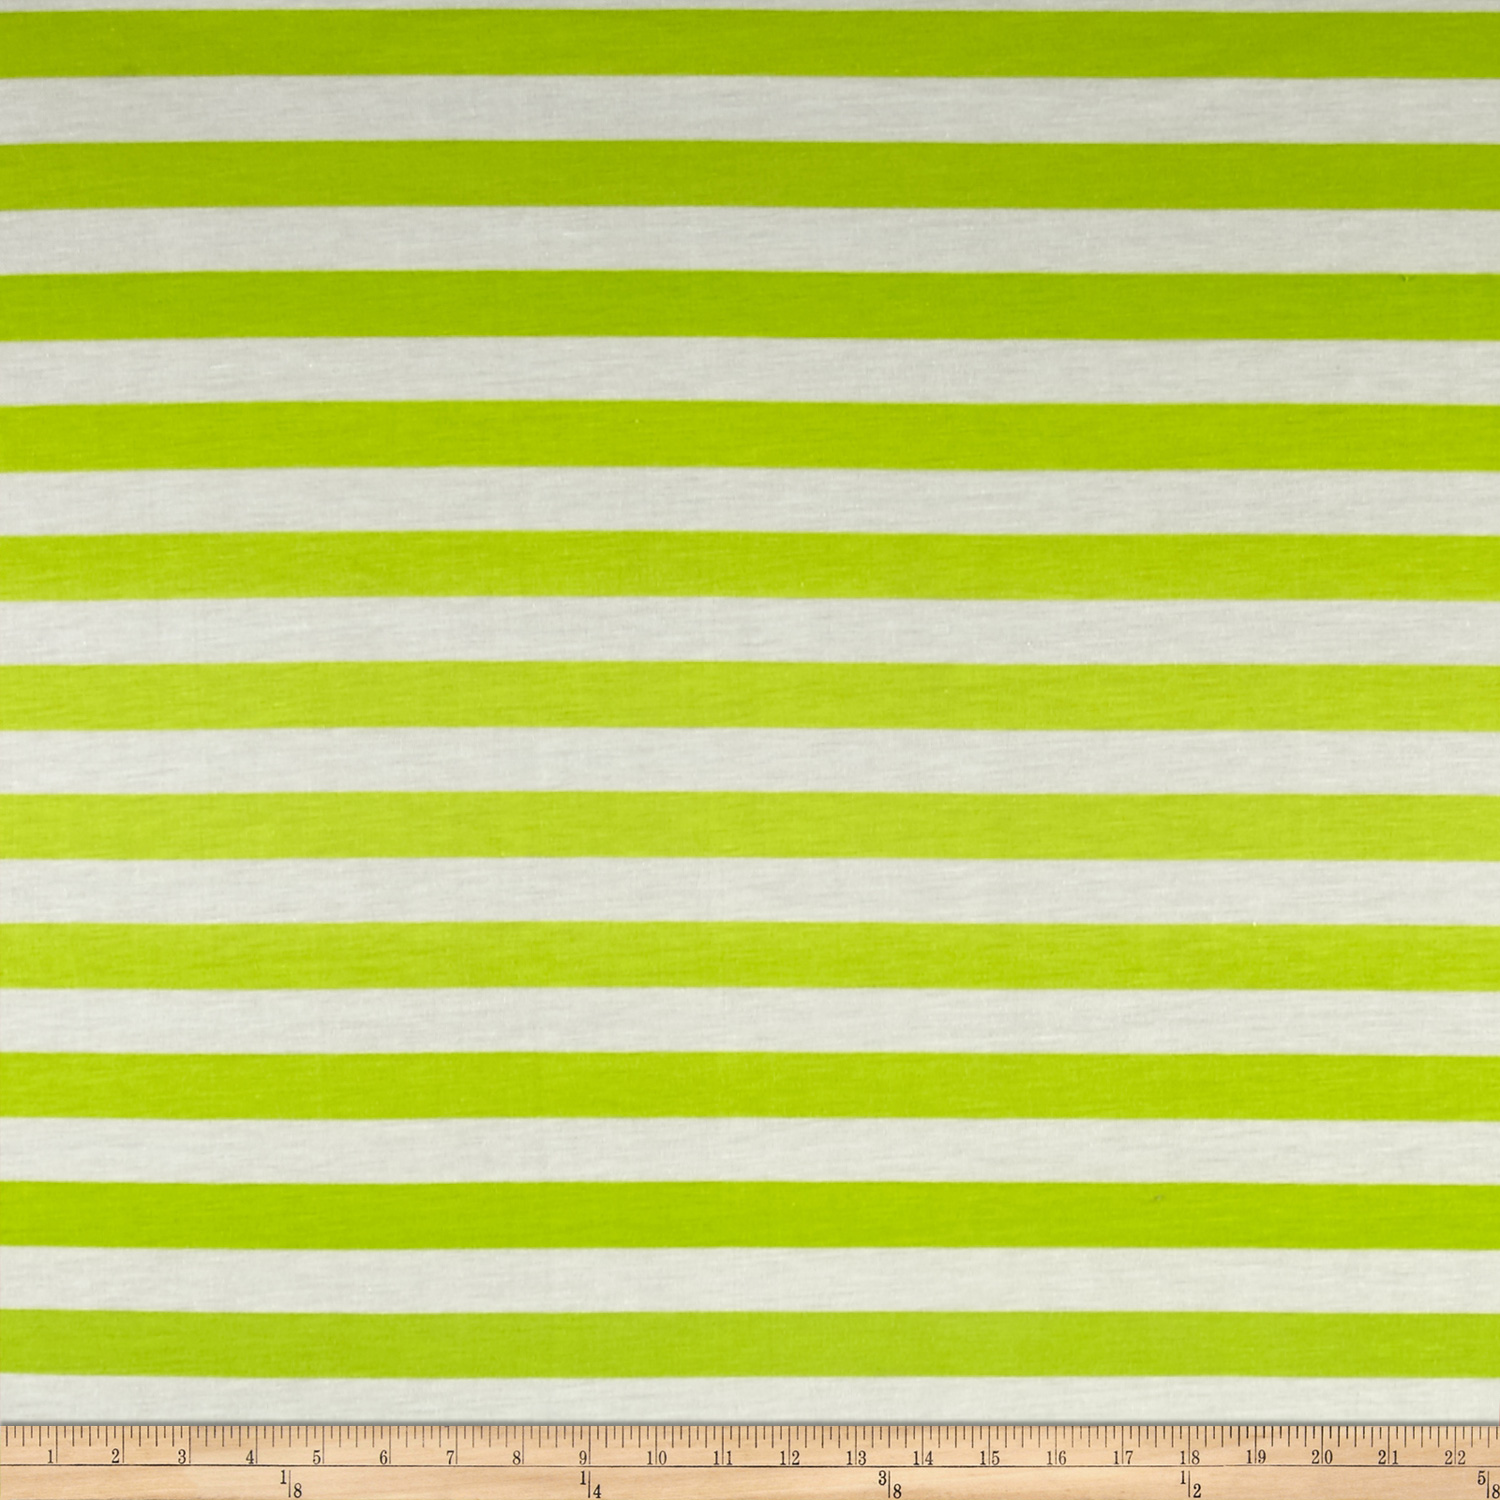 Ombre Jersey Knit Stripe Green/Lime Fabric by Stardom Specialty in USA